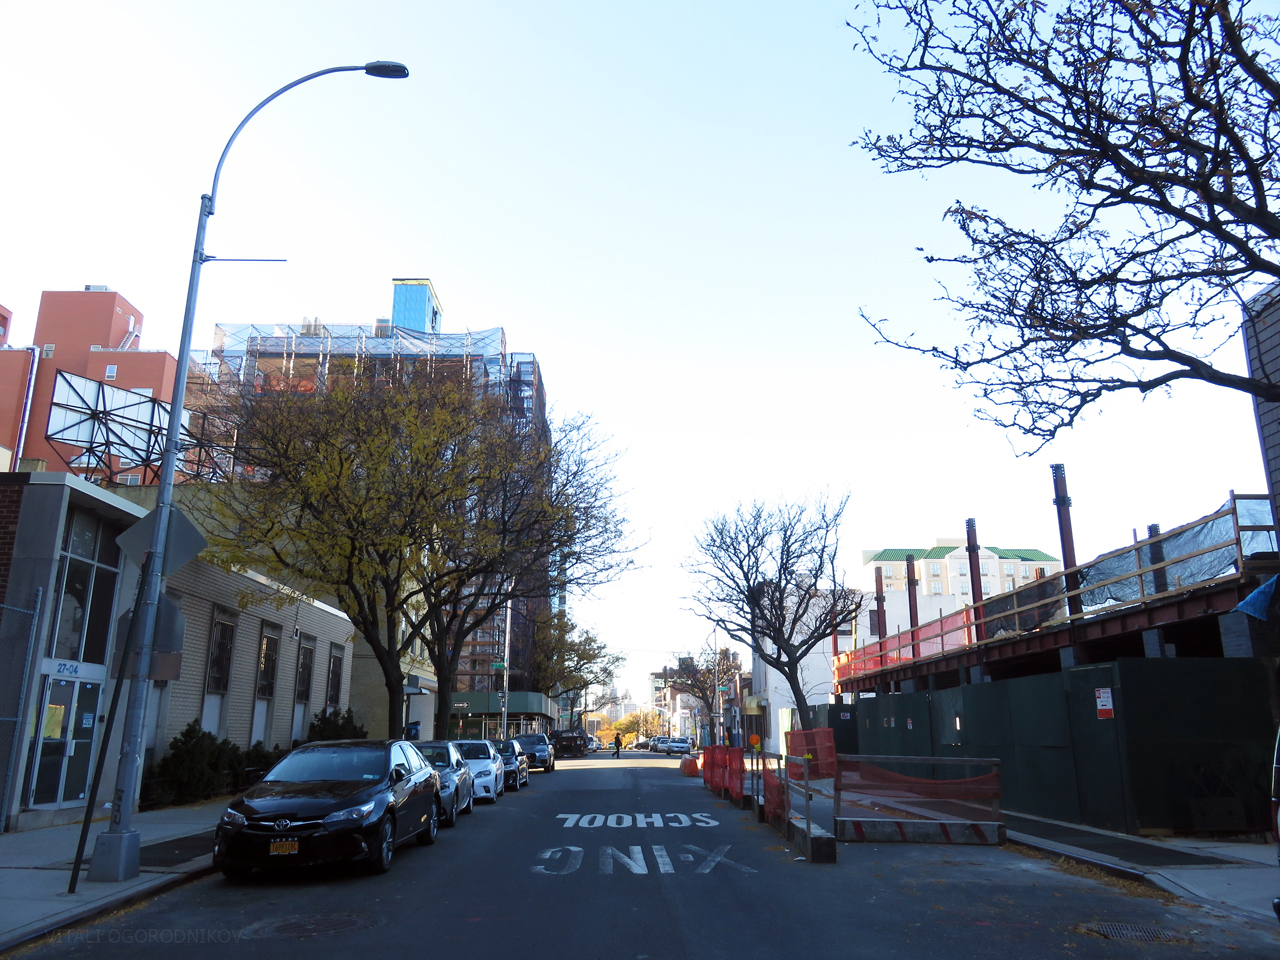 Looking northwest along 41st Avenue. The Queens Boro Tower is under construction on the left.